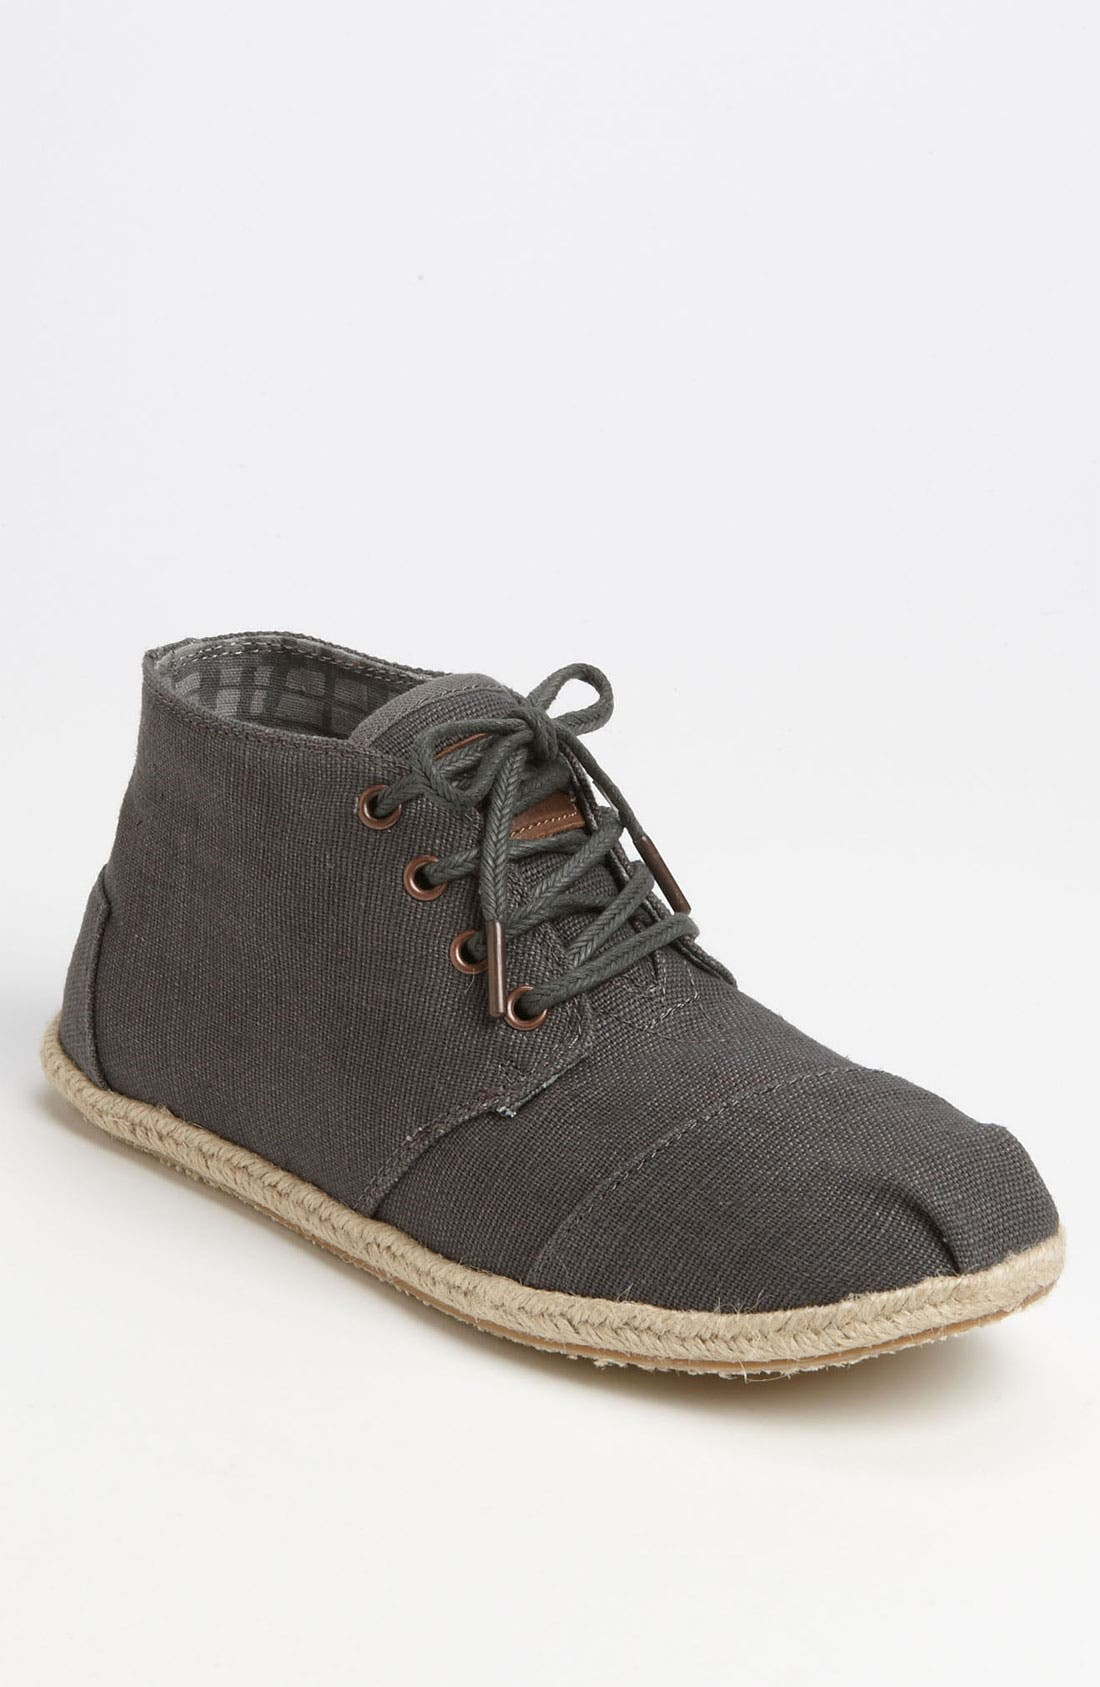 Alternate Image 1 Selected - TOMS 'Botas - Desert' Burlap Chukka Boot (Men)